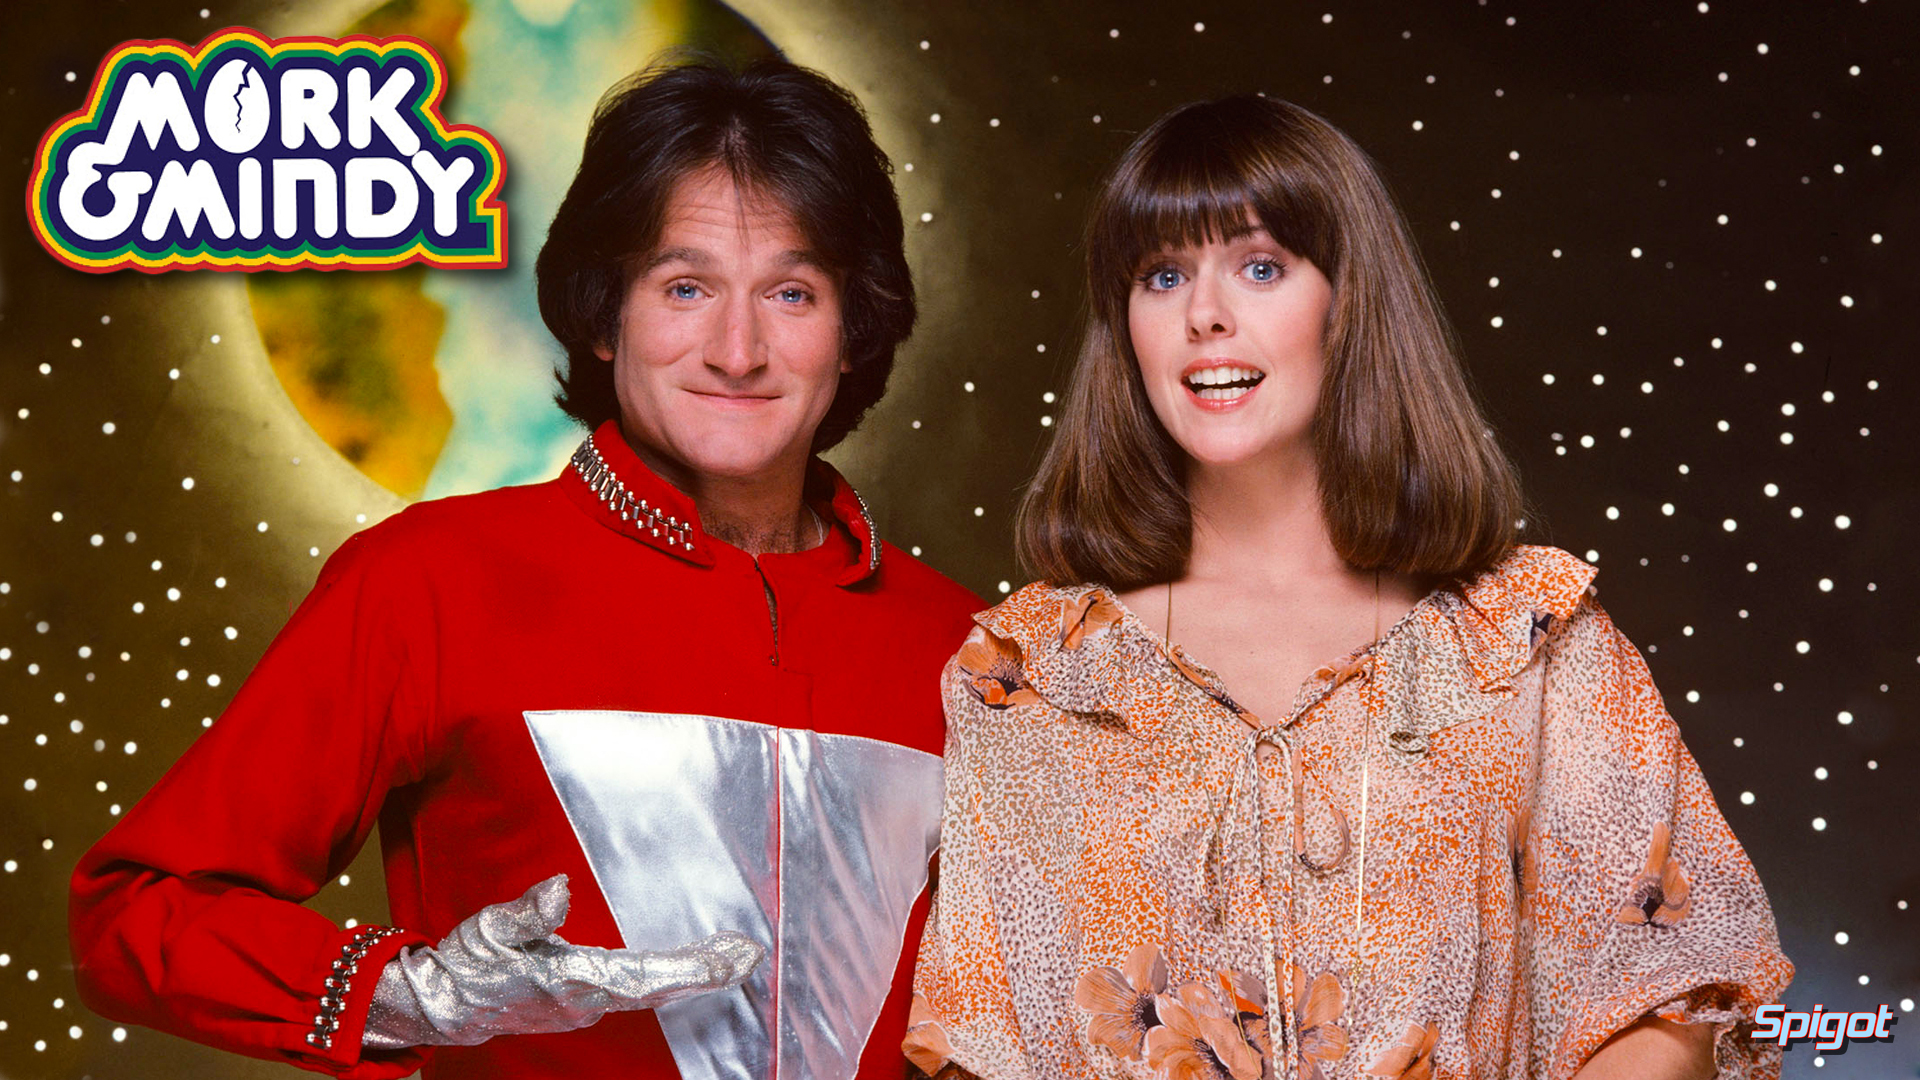 THE DOC(MANHATTAN) IS IN – Mork & Mindy